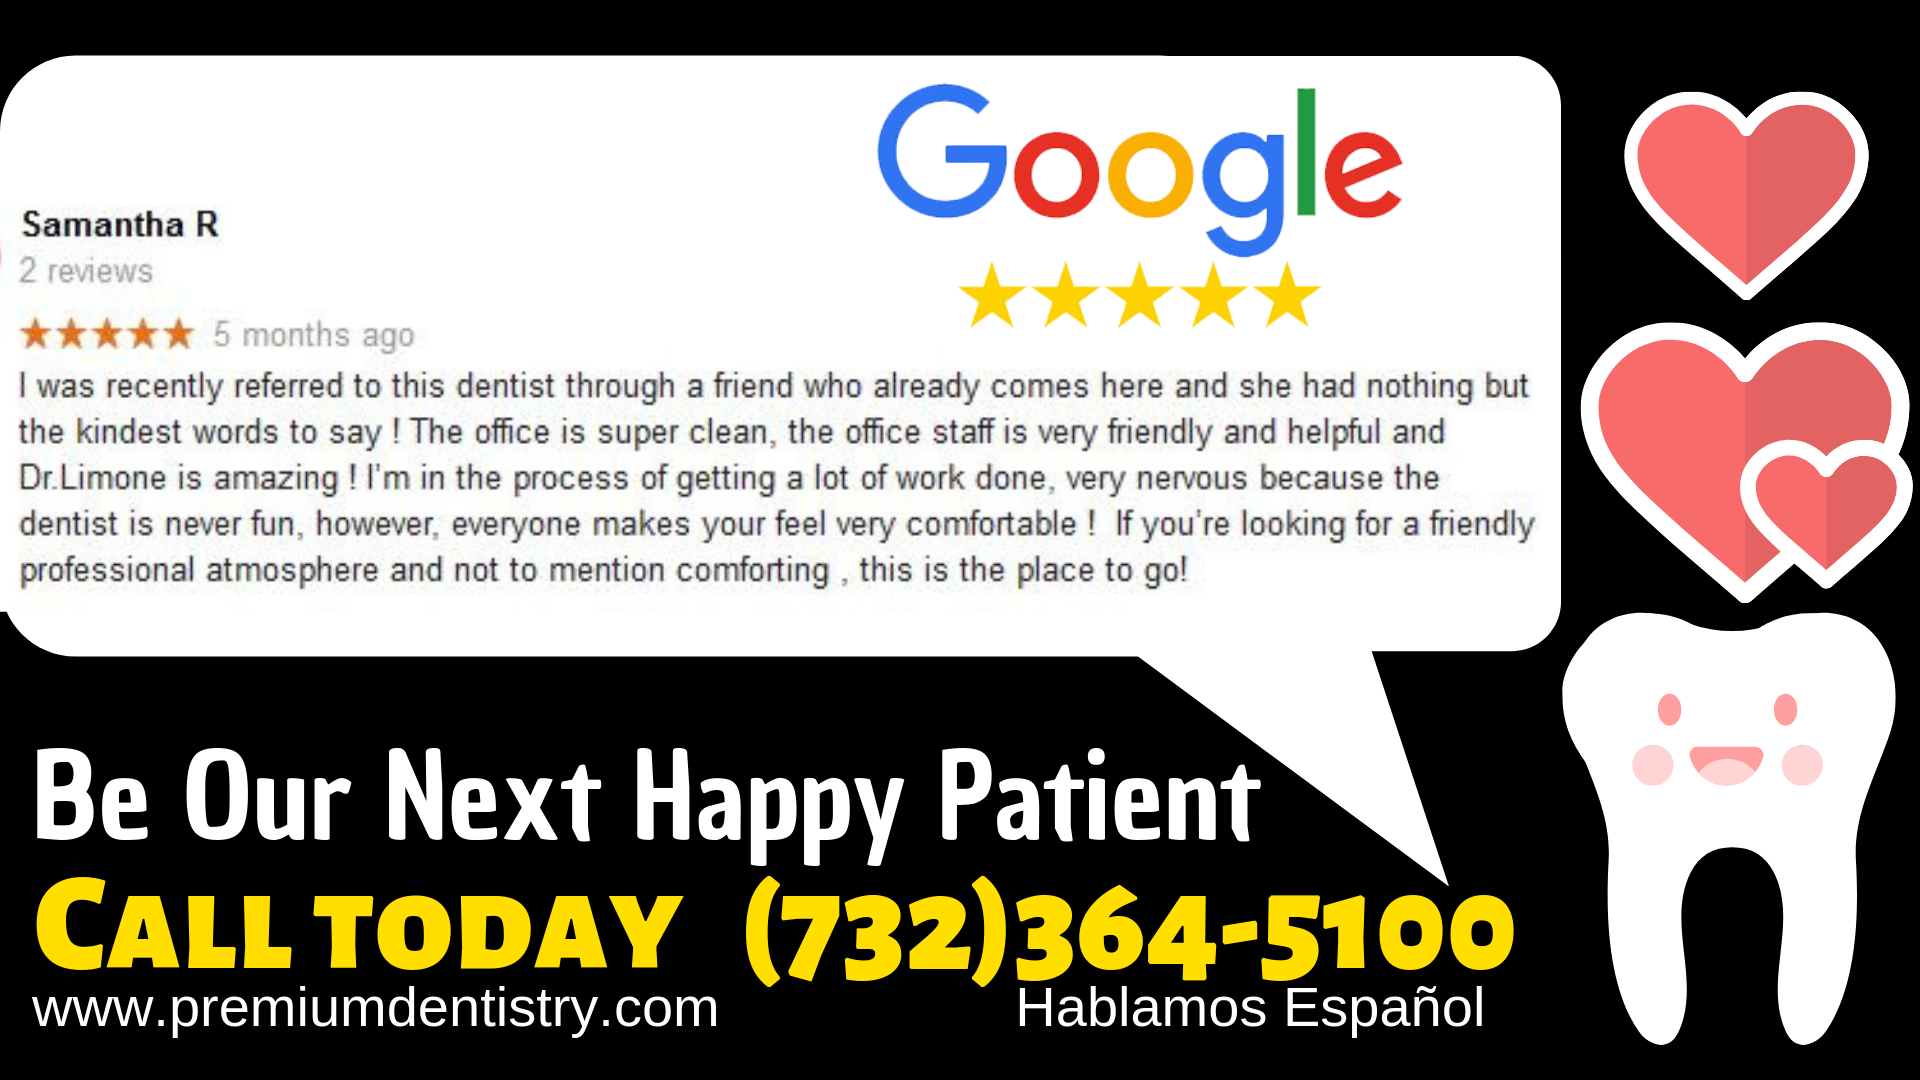 Be Out Next Happy Dental Patient By Visiting Us Today Call Us Now 732 364 5100 Top Liked Dental Practice On Route Happy Dental Painless Dentistry Endodontist